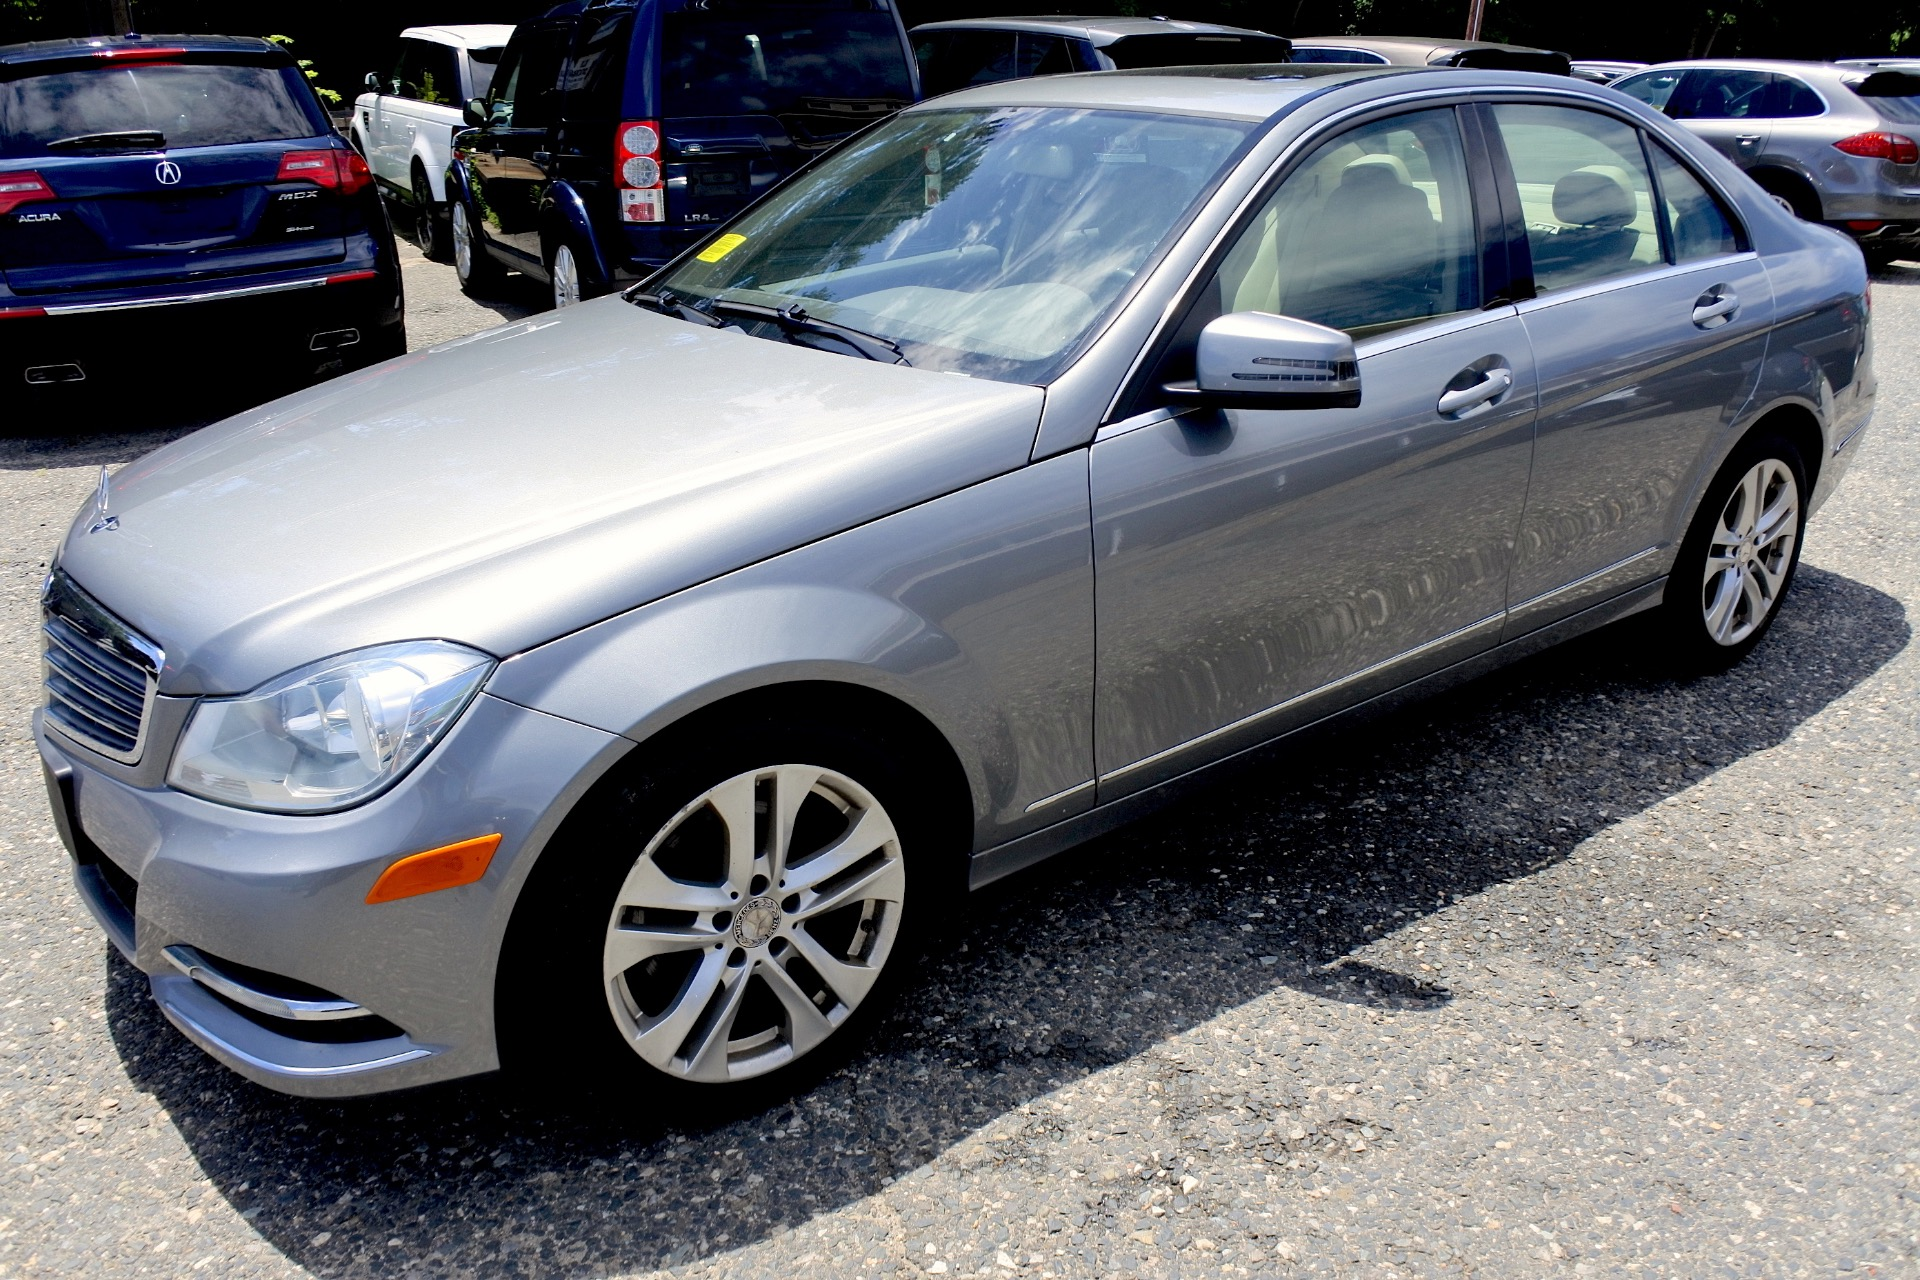 Used 2013 Mercedes-Benz C-class C300 Luxury 4MATIC Used 2013 Mercedes-Benz C-class C300 Luxury 4MATIC for sale  at Metro West Motorcars LLC in Shrewsbury MA 1